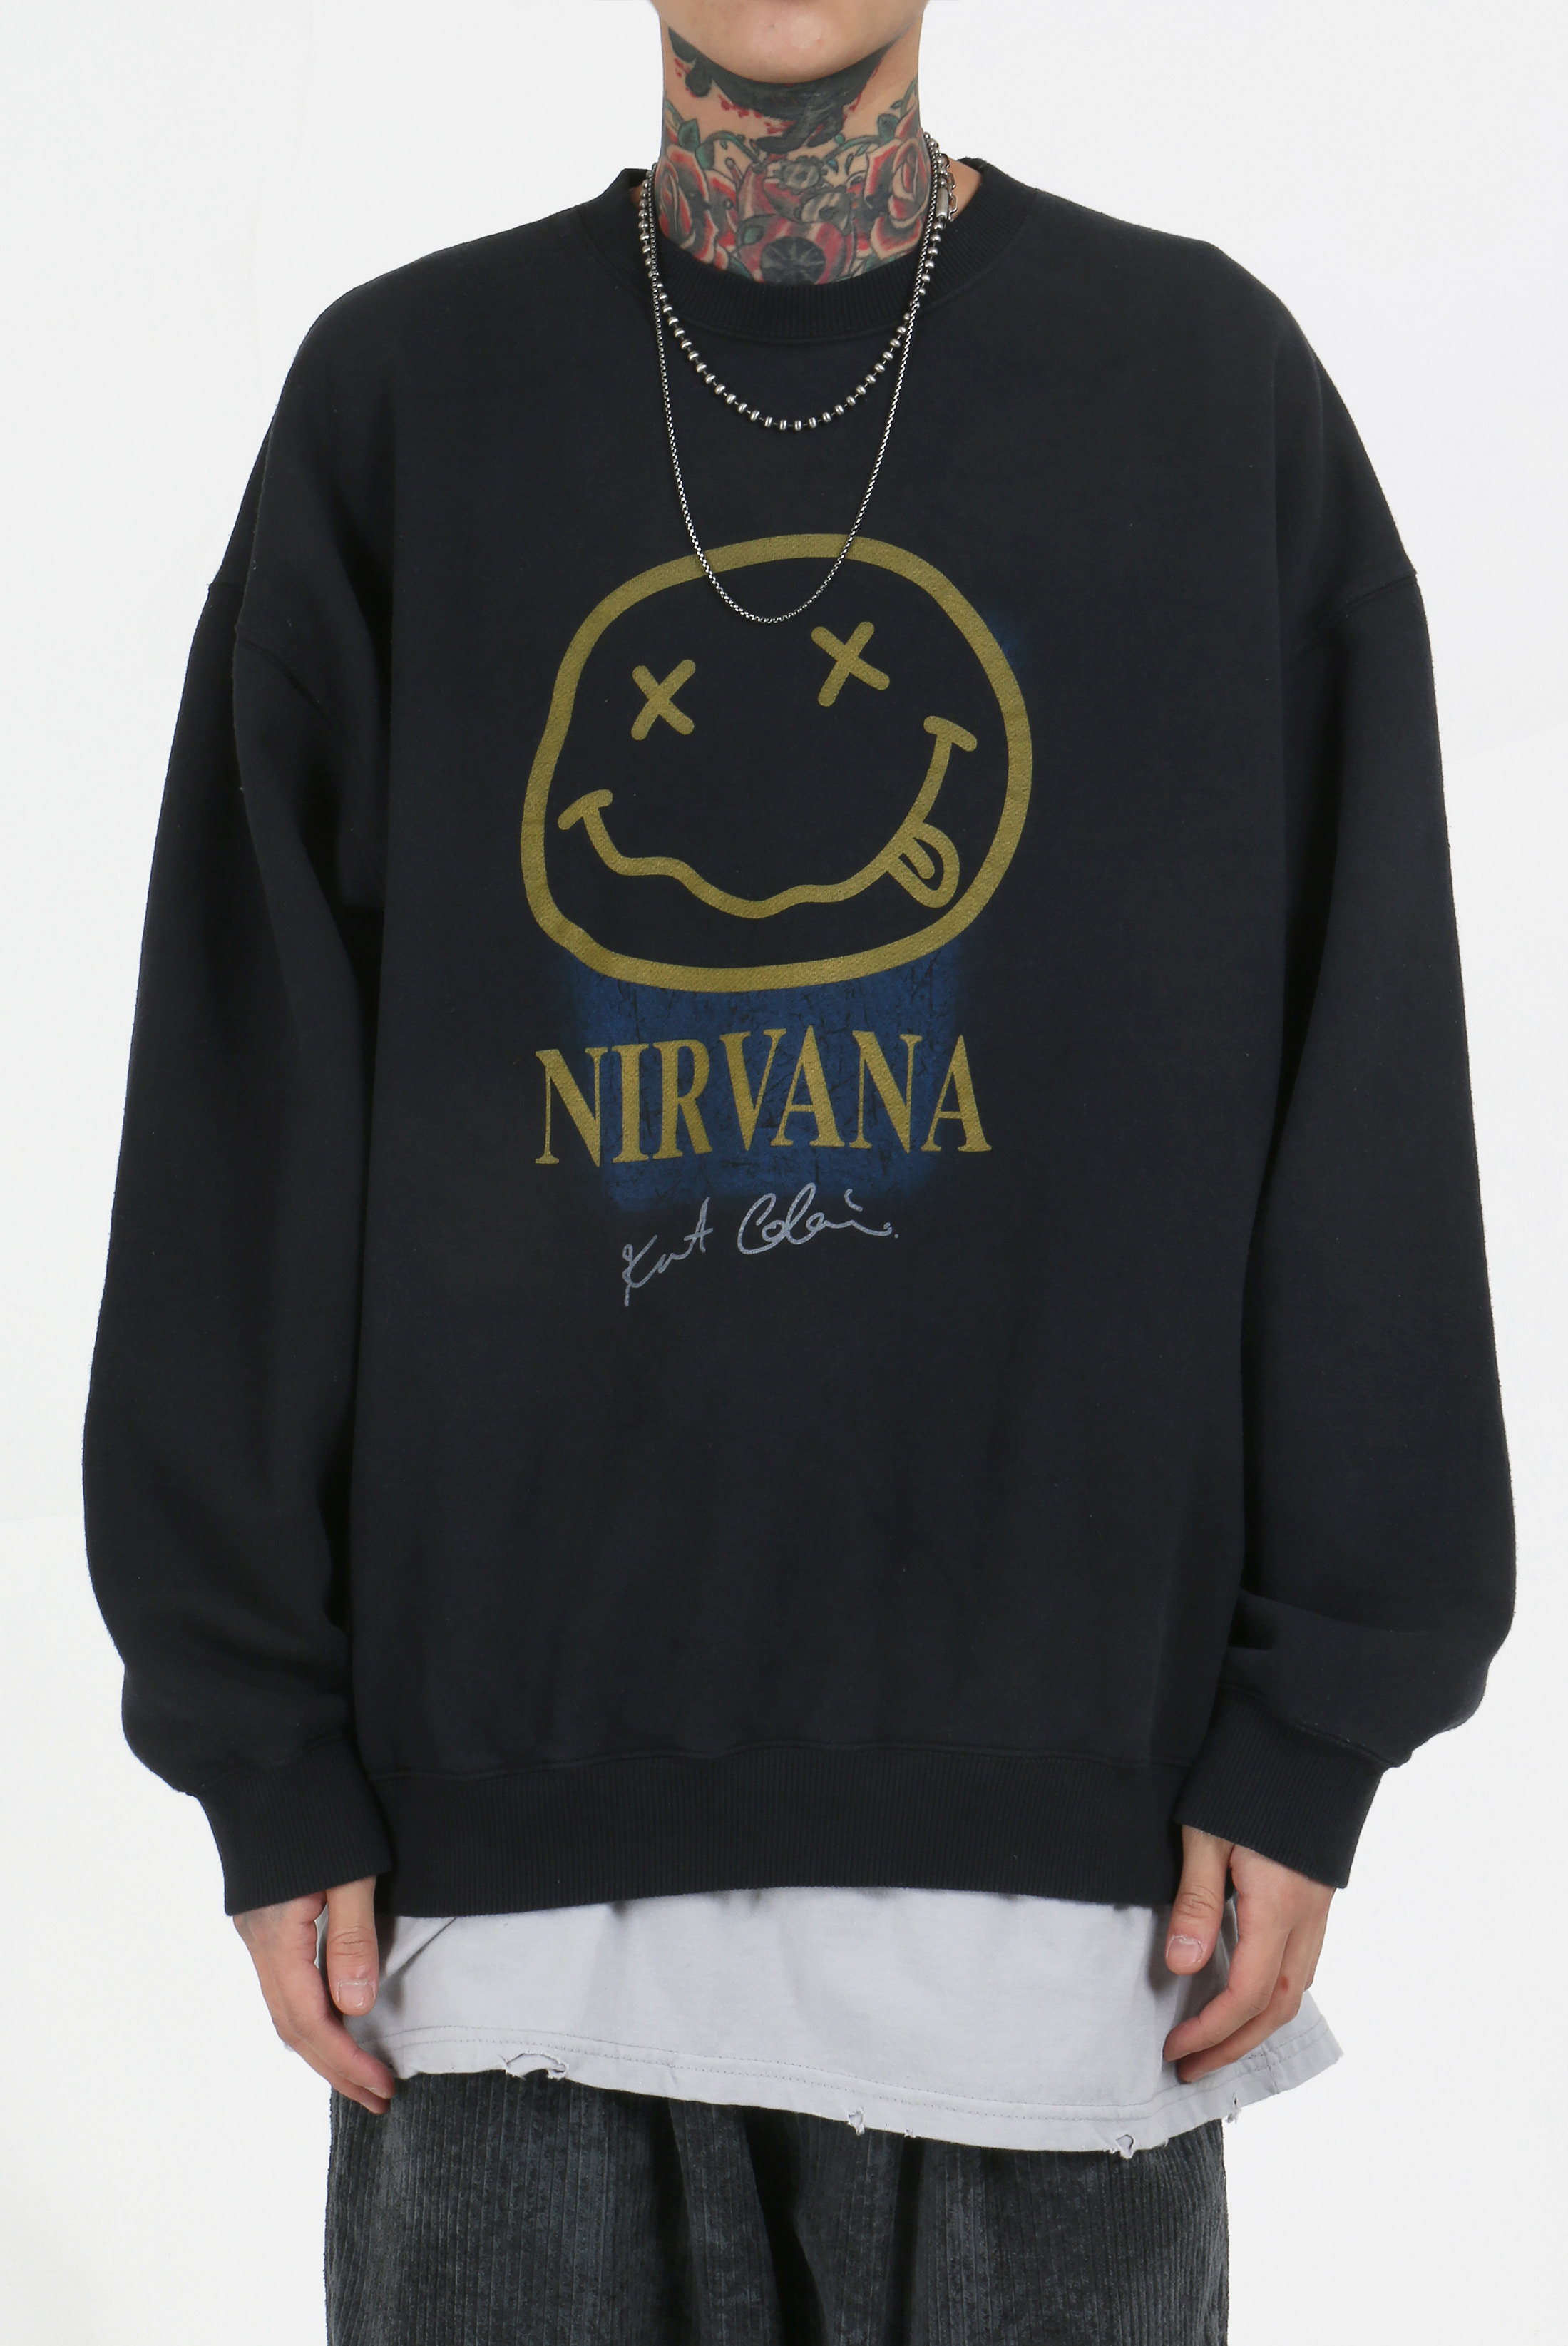 Smile Dying Sweatshirts